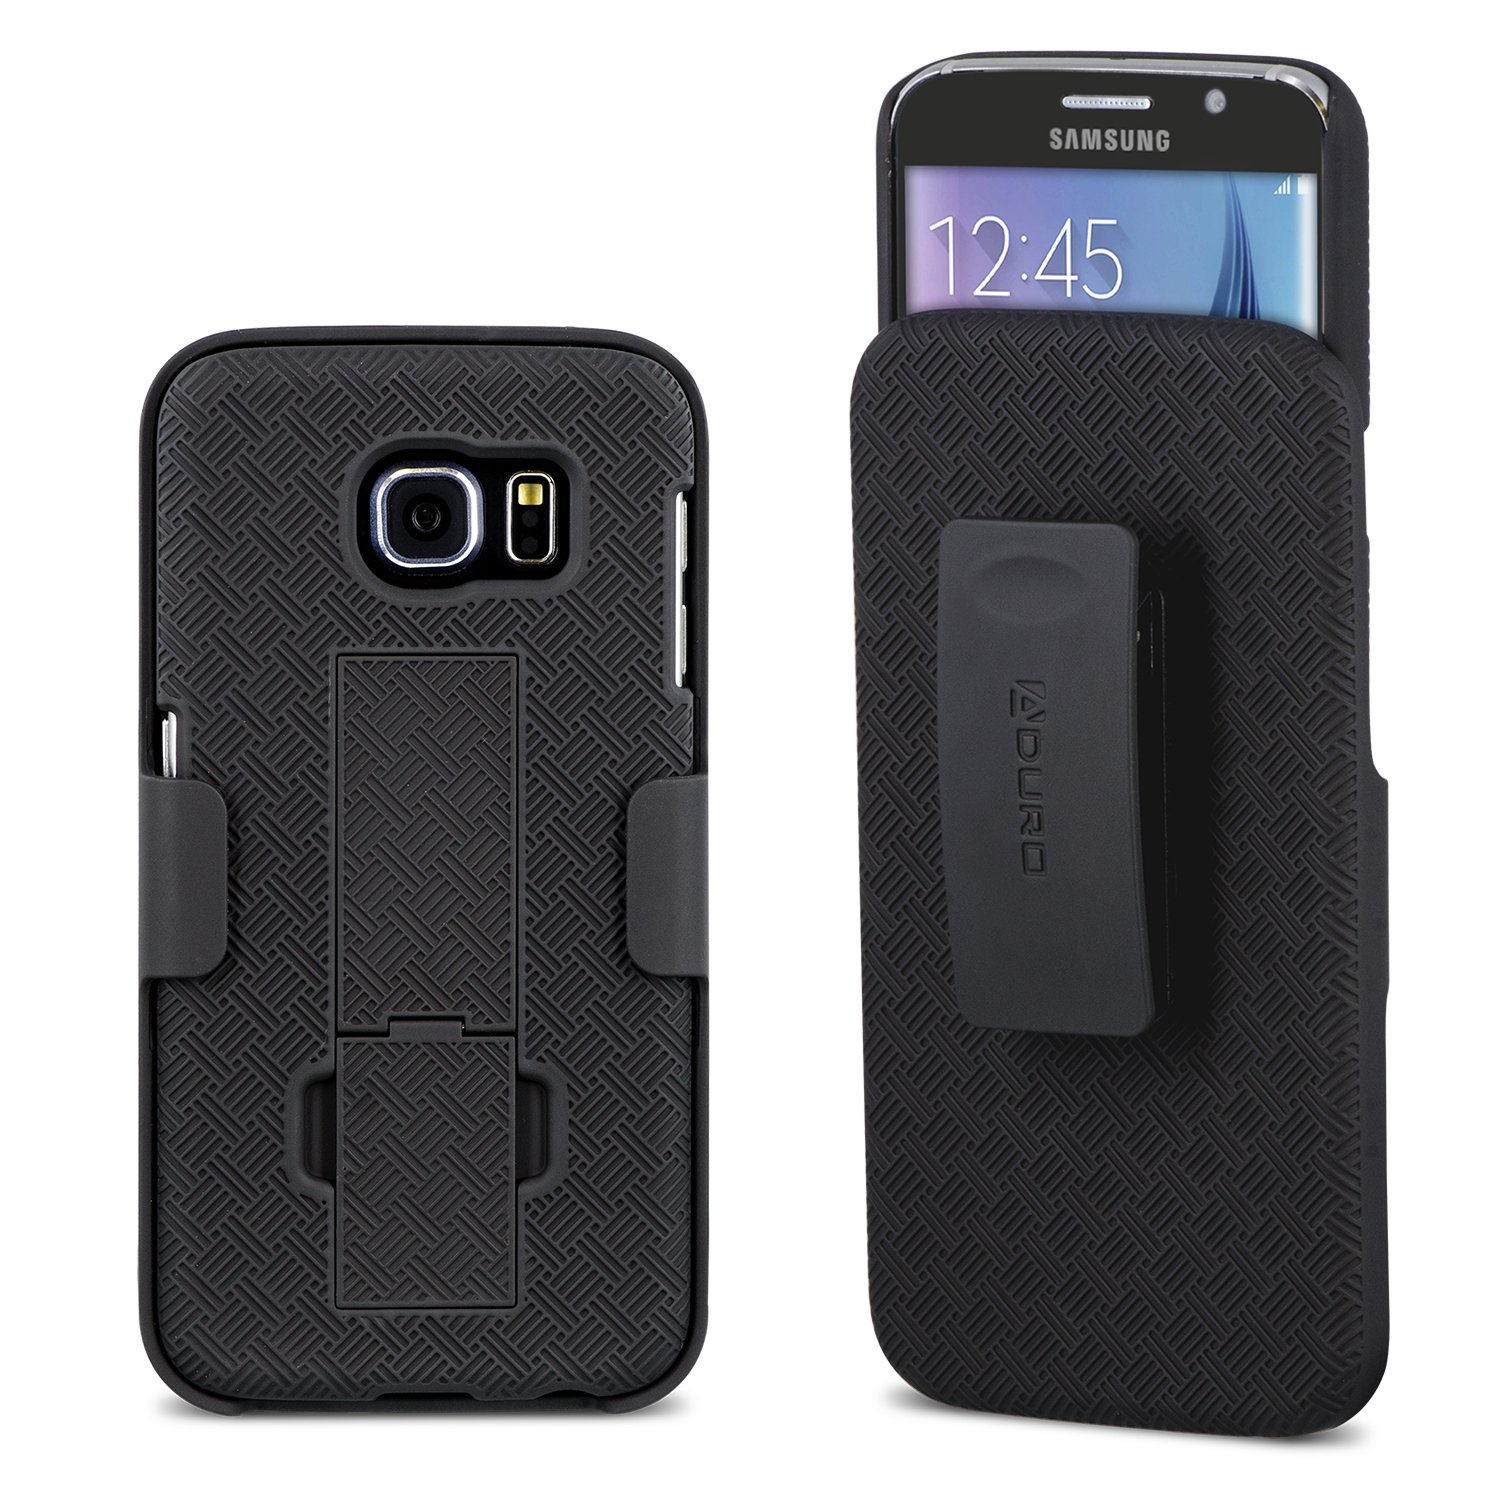 Galaxy S6 Case, Aduro Shell & Holster COMBO Case Super Slim Shell Case w/Built-In Kickstand + Swivel Belt Clip Holster for Samsung Galaxy S6